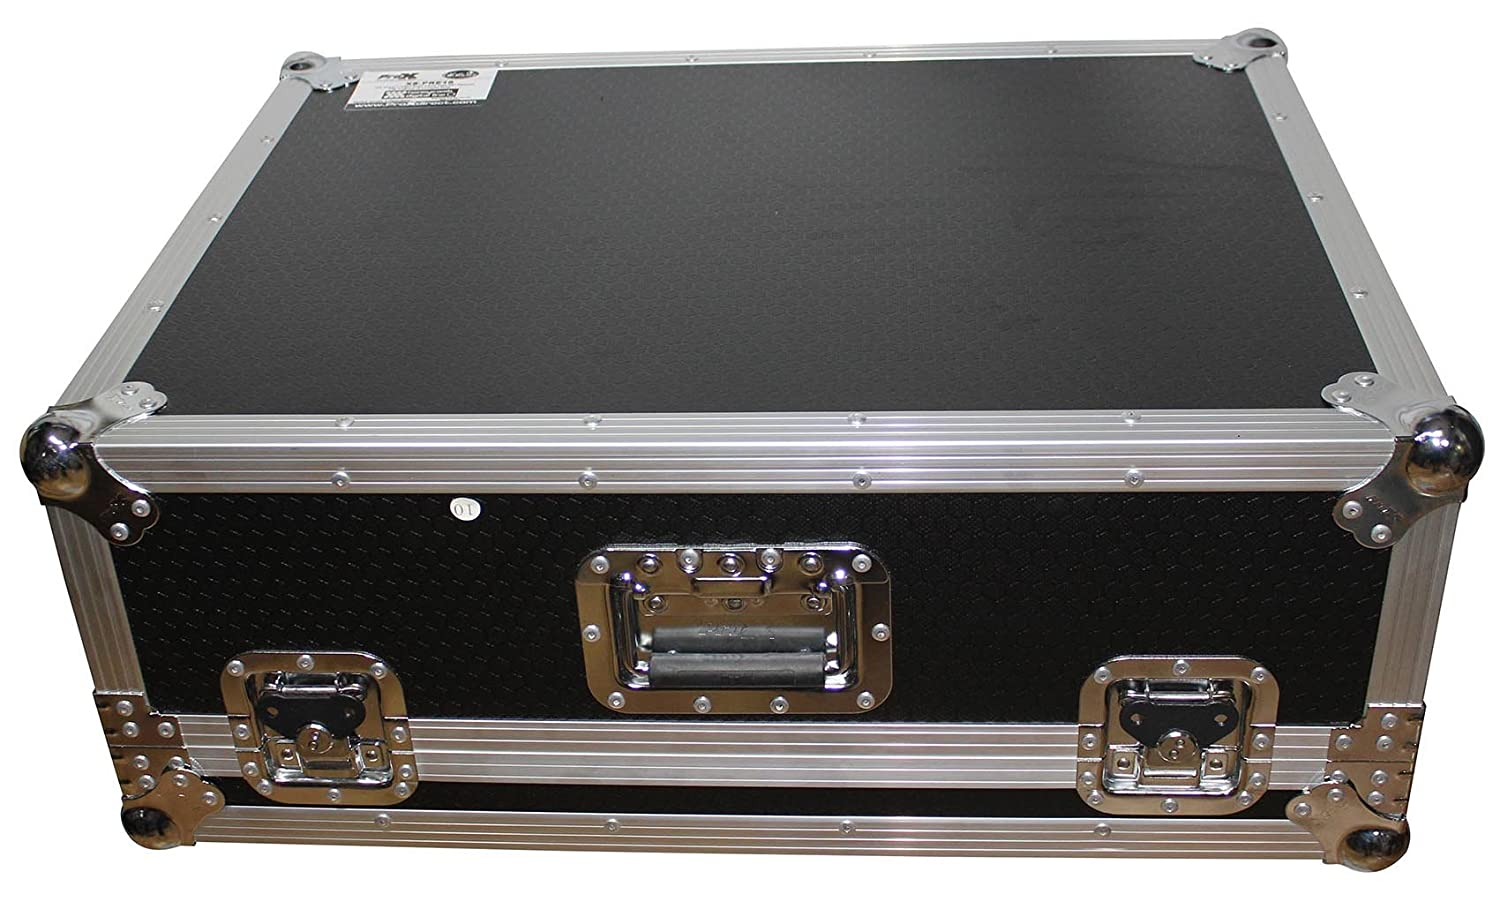 ProX XS-PRE16 ATA-300 Flight Road Case for PreSonus StudioLive 16.4.2, 16.0.2 Pro x Cases